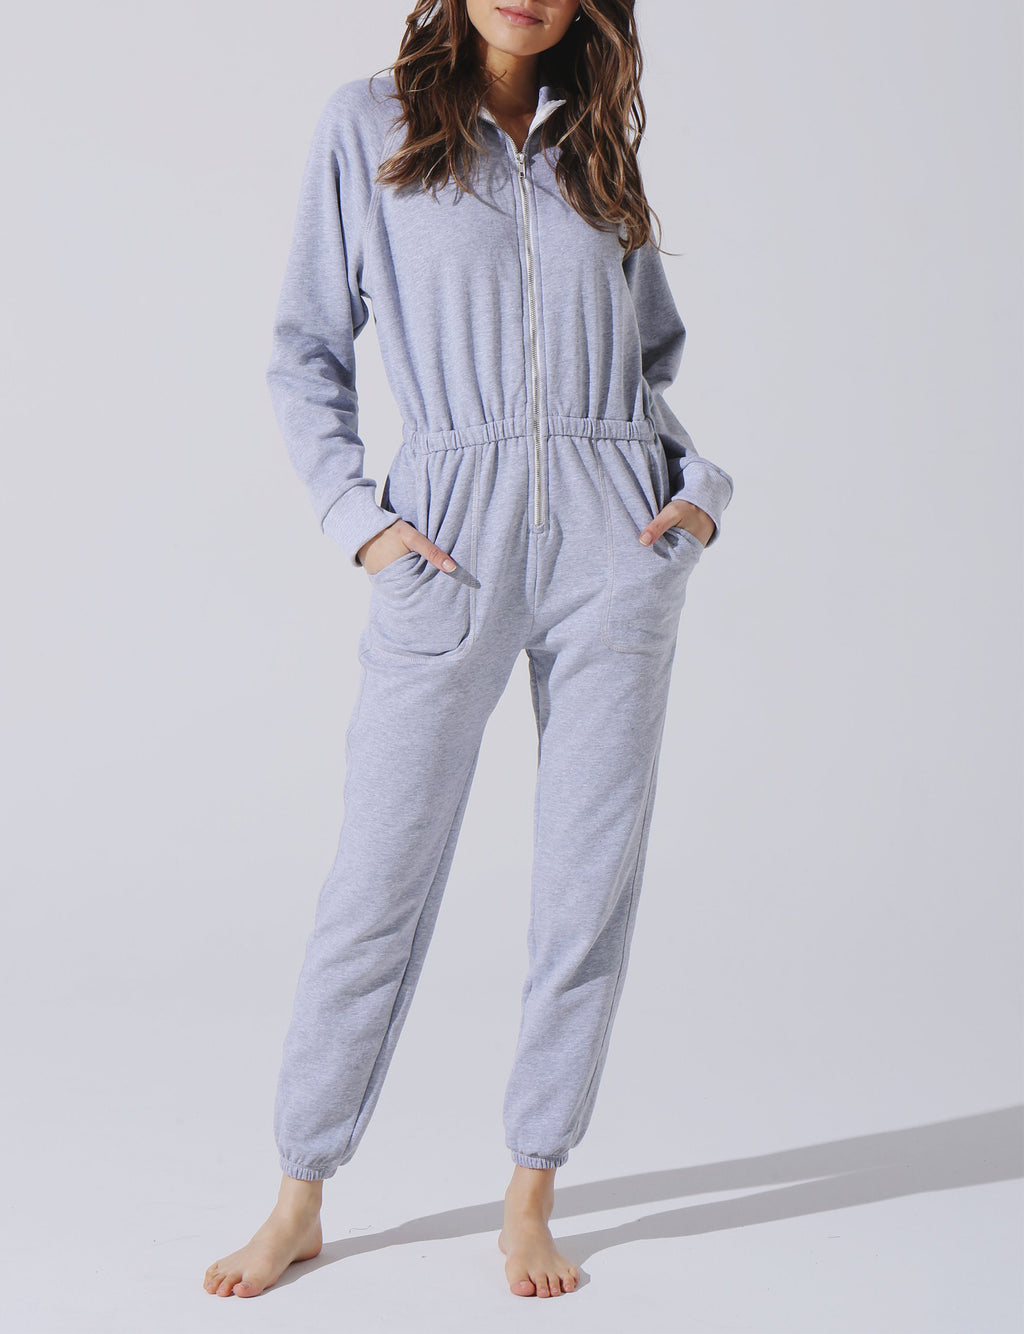 Mojave Jumpsuit in Heather Grey